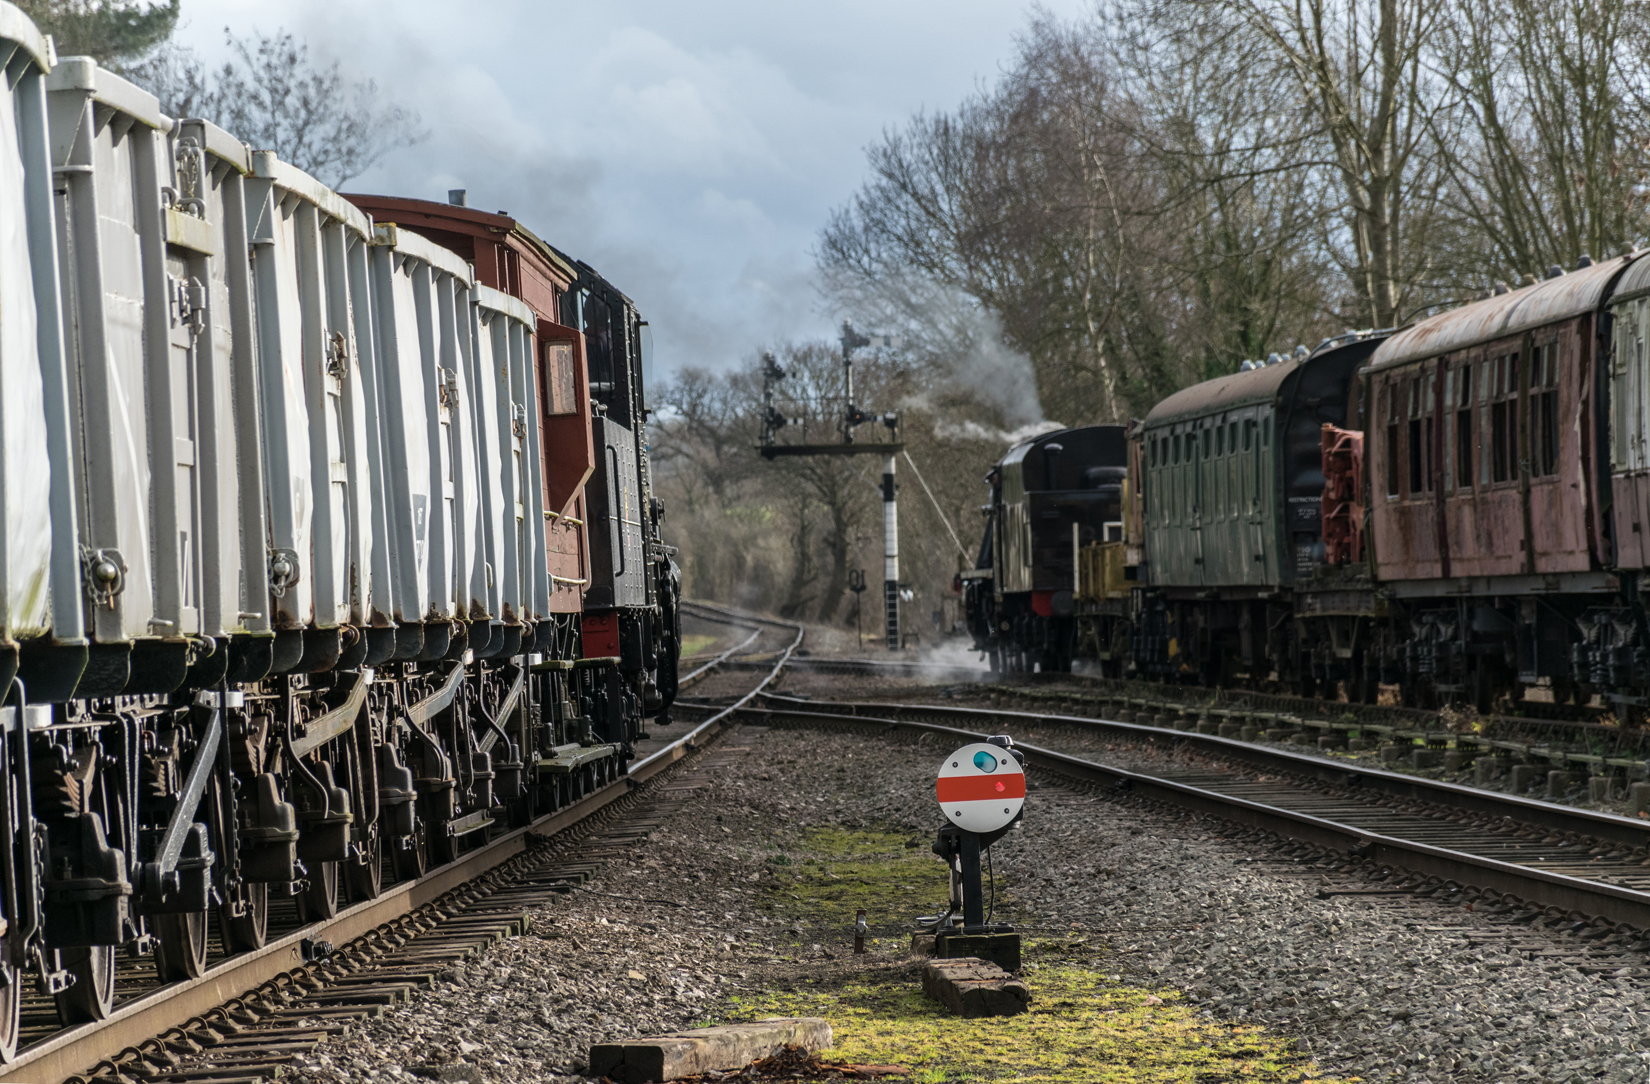 46521 and 48624 at Rothwell sidings.